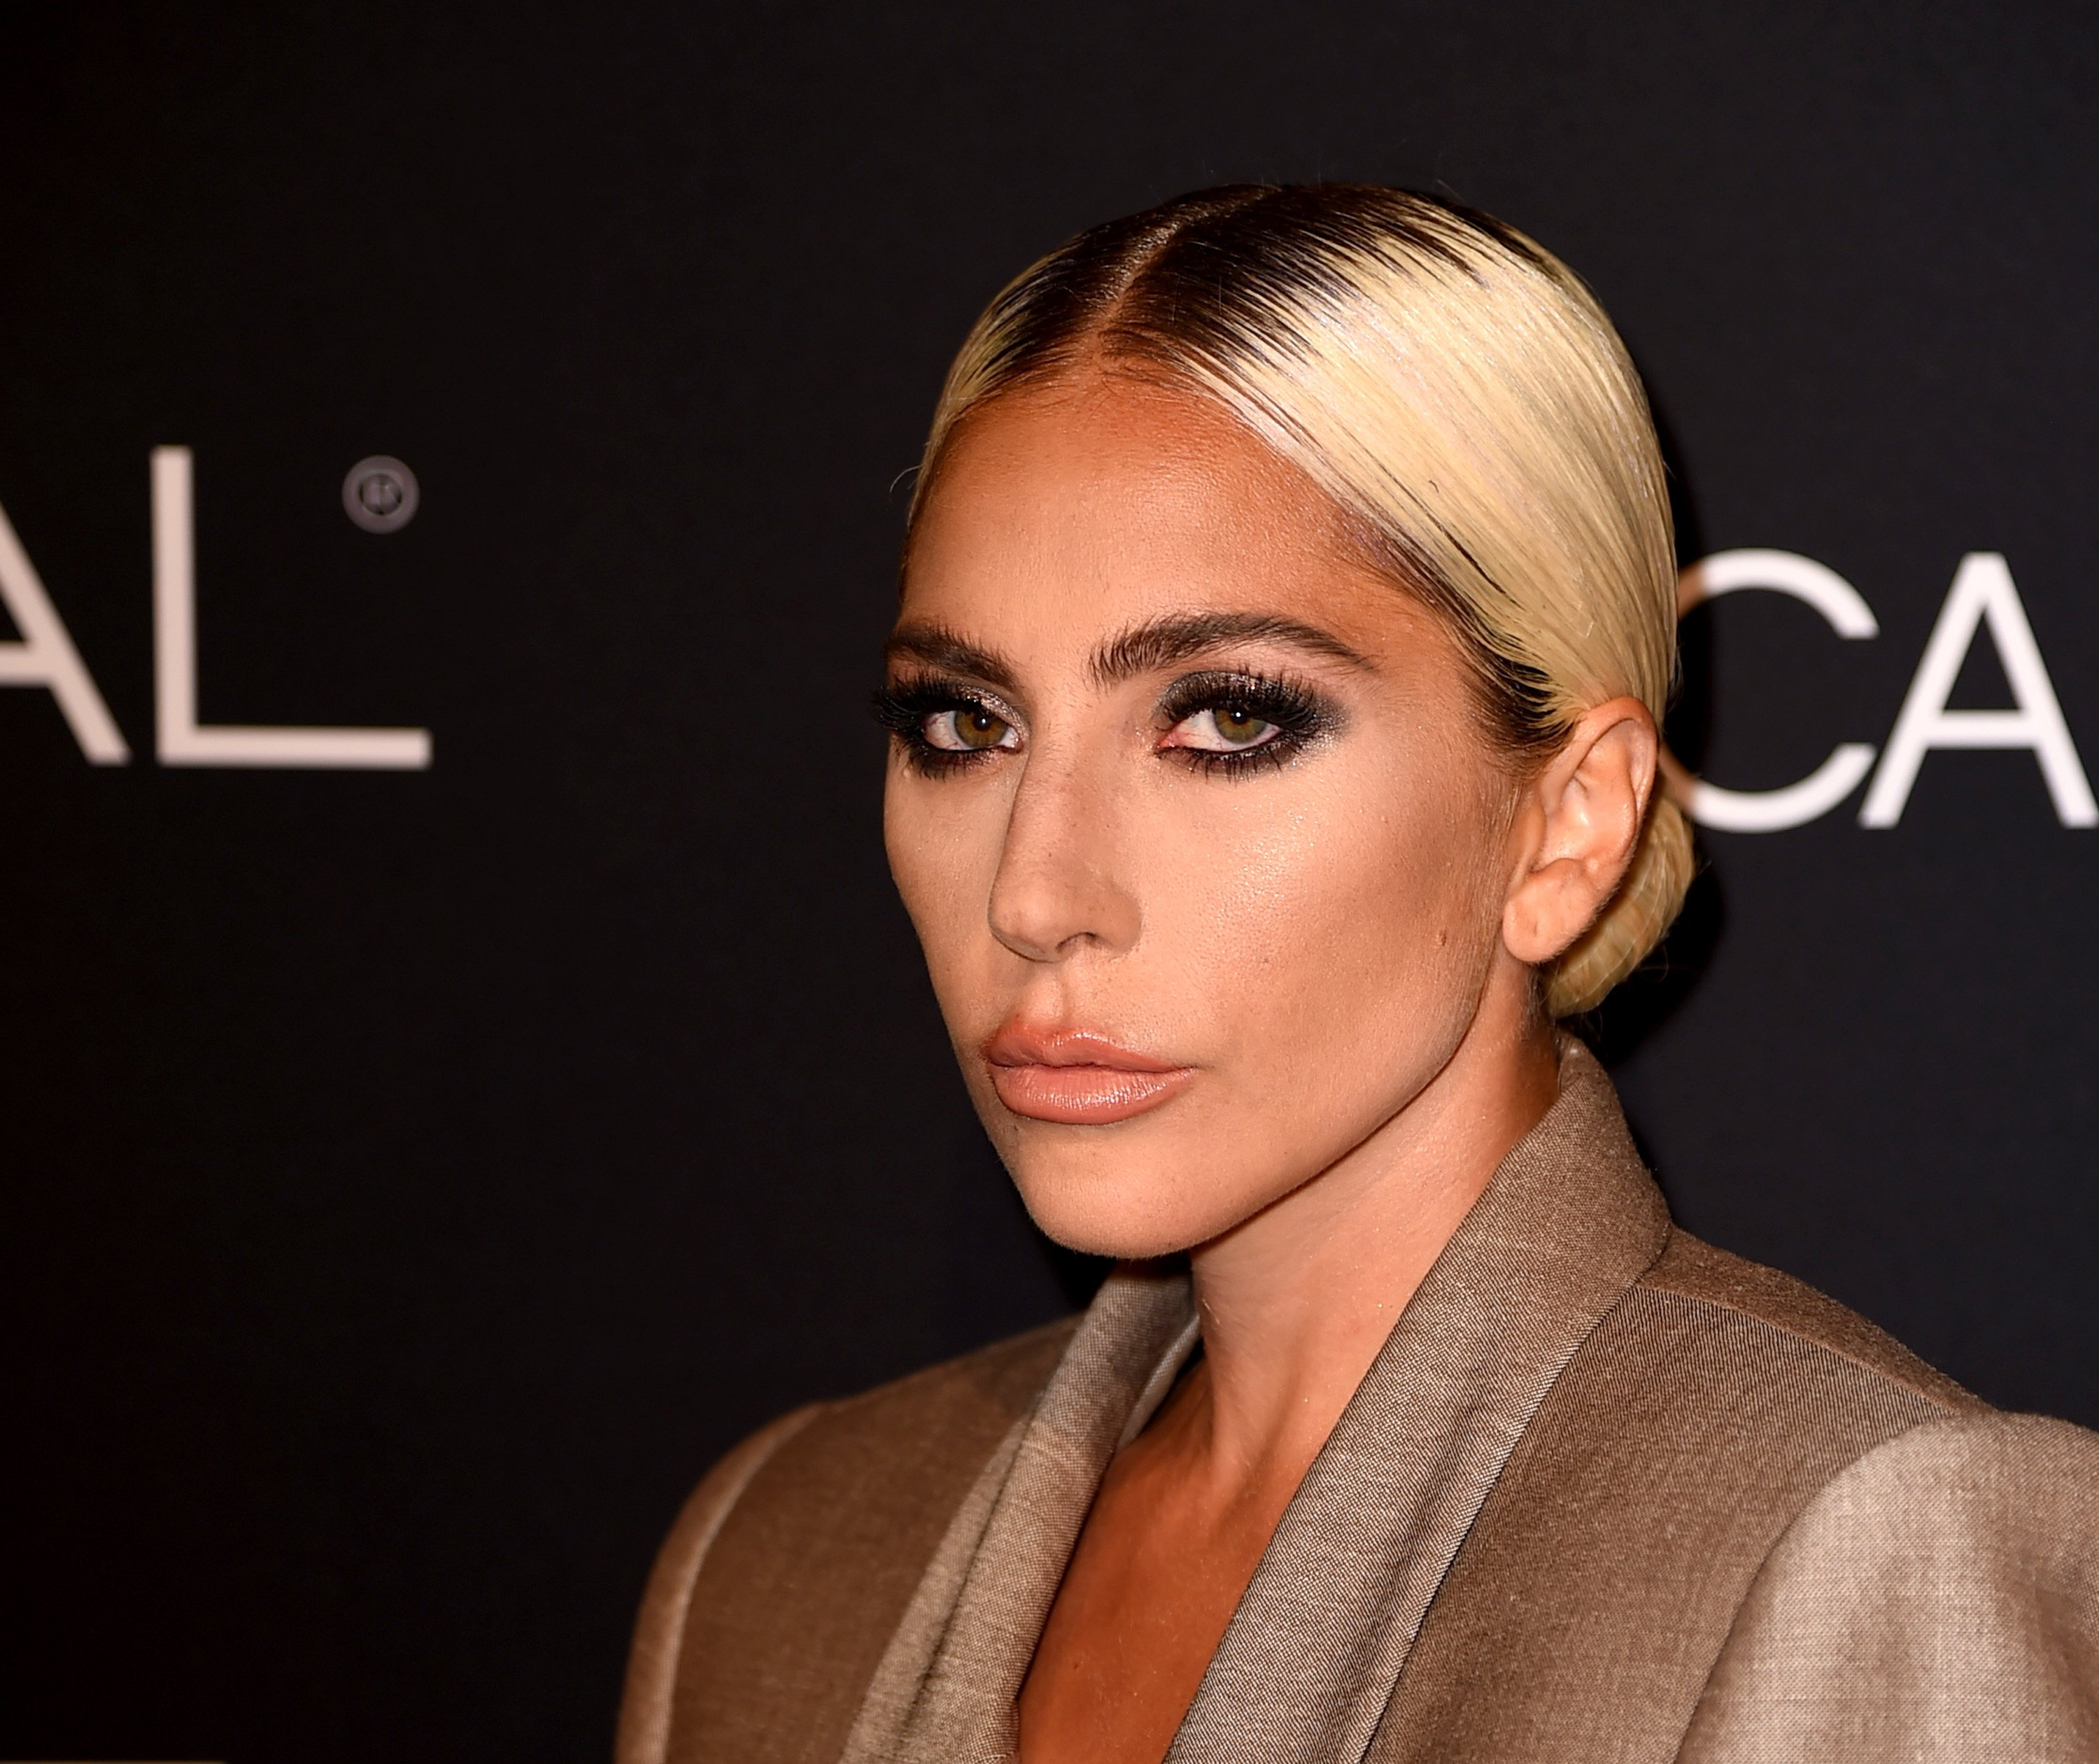 Lady Gaga arrives at the 25th Annual ELLE Women in Hollywood Celebration at the Four Seasons Hotel at Beverly Hills on October 15, 2018 in Los Angeles, California | Photo: Getty Images